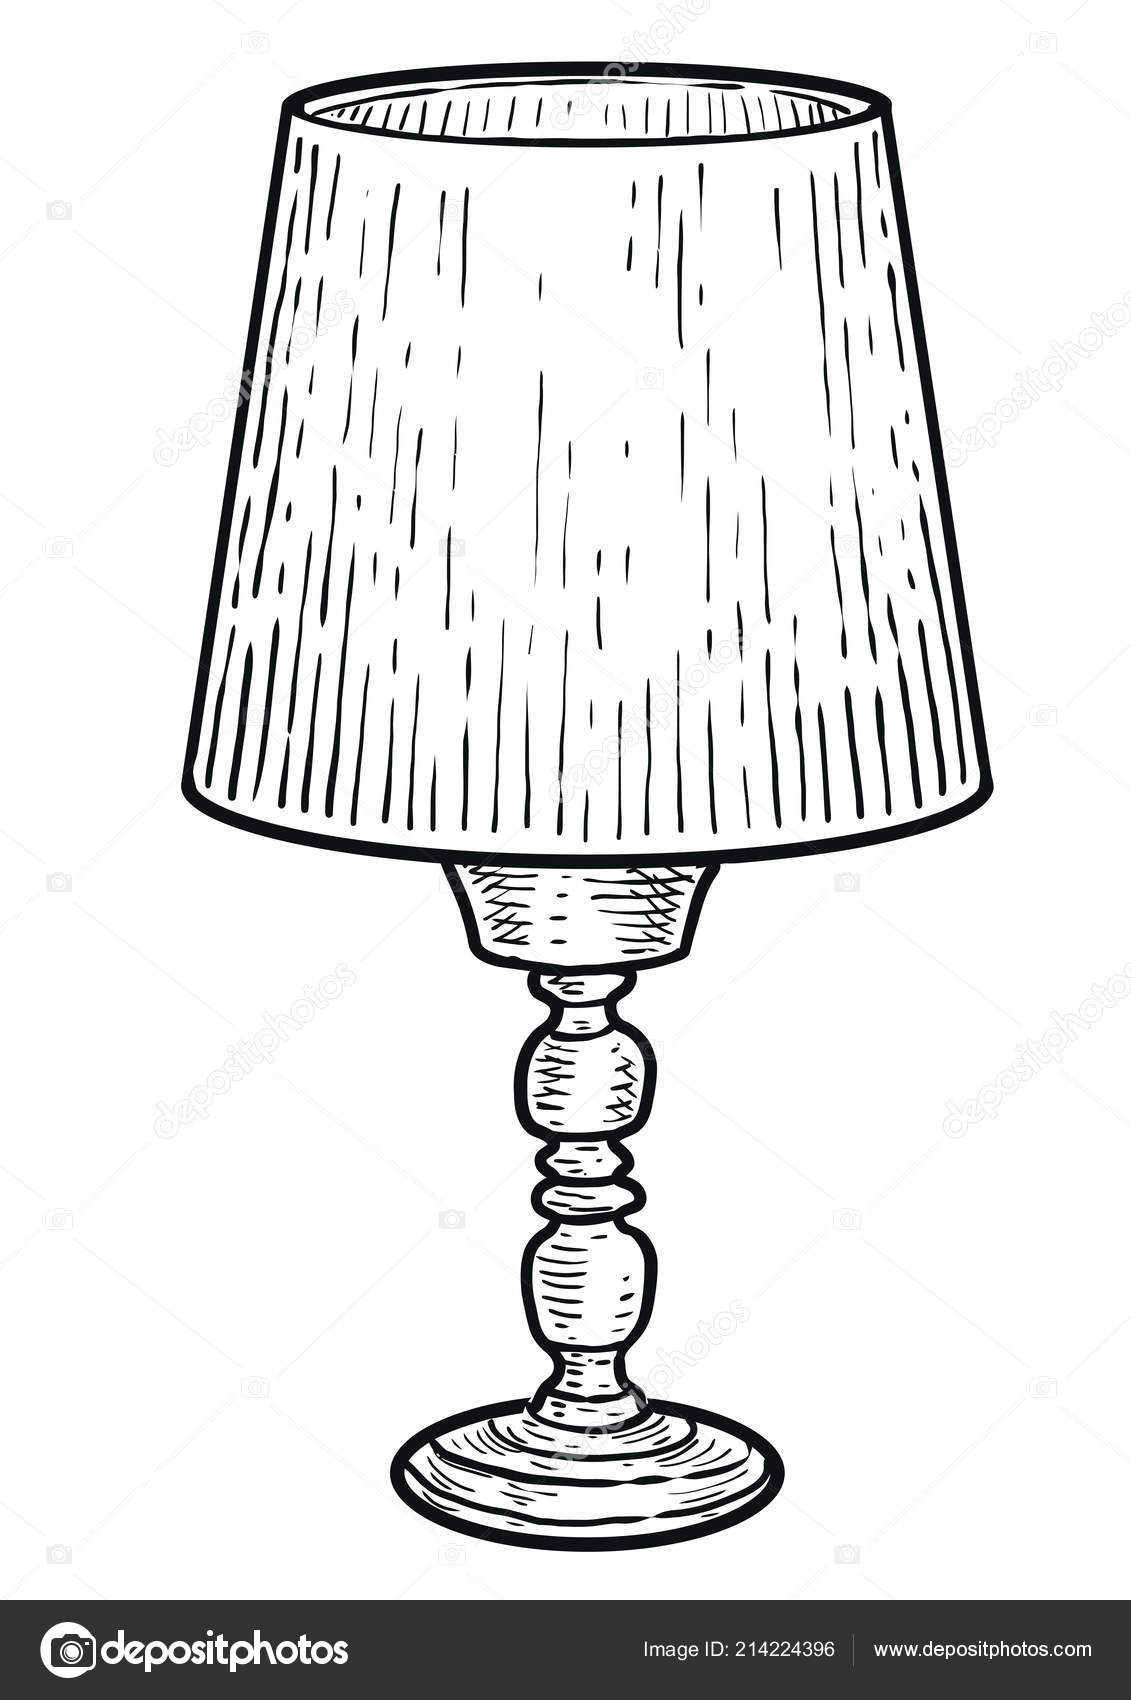 Pictures Lamp For Drawing Table Lamp Illustration Drawing Engraving Ink Line Art Vector Stock Vector C Jenesesimre 214224396